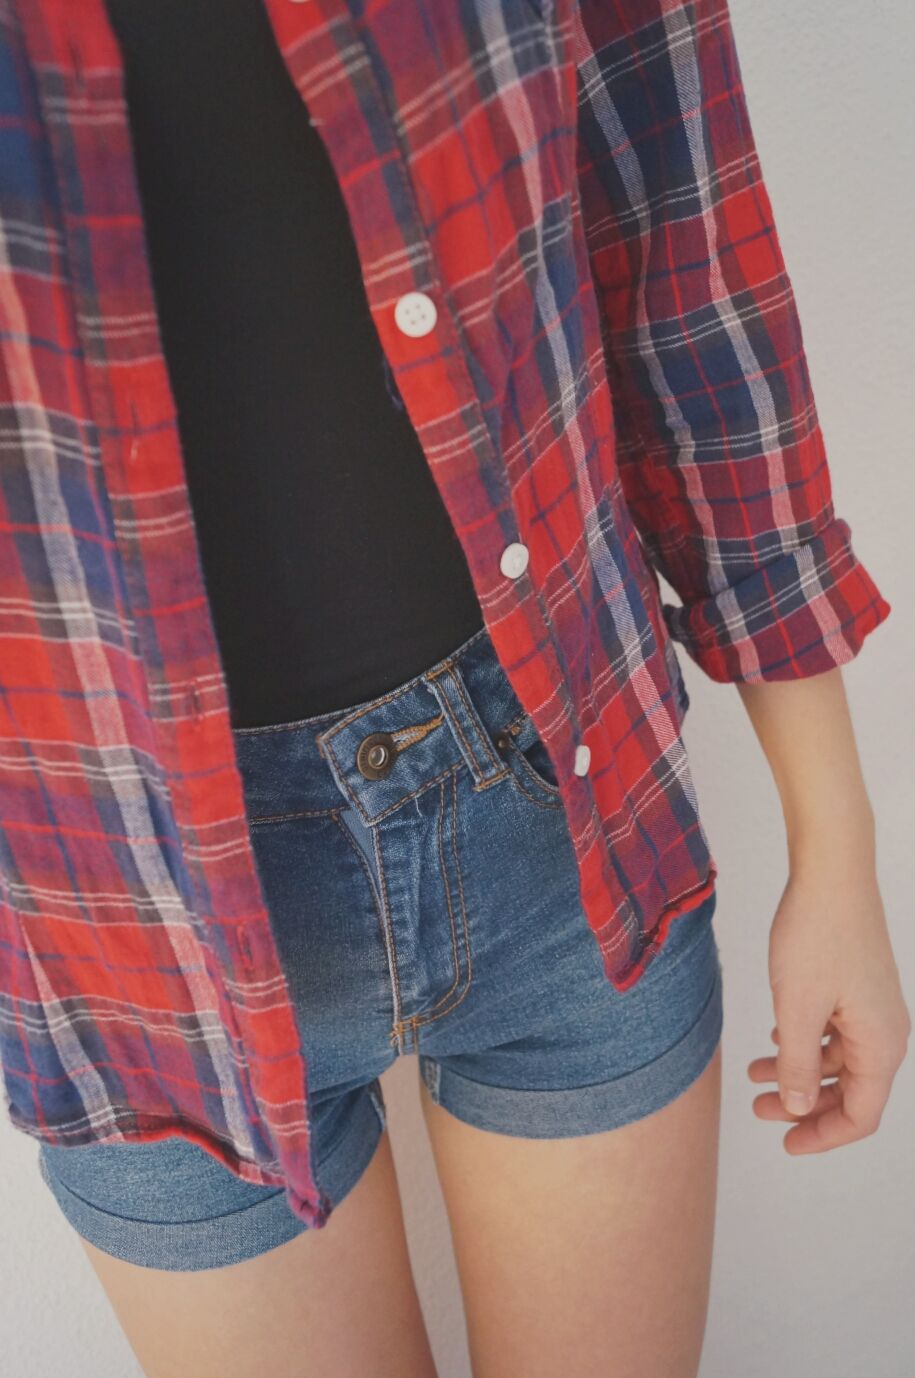 Flannel outfits with leggings  I love these kind of outfits when i go shopping all im gonna buy is